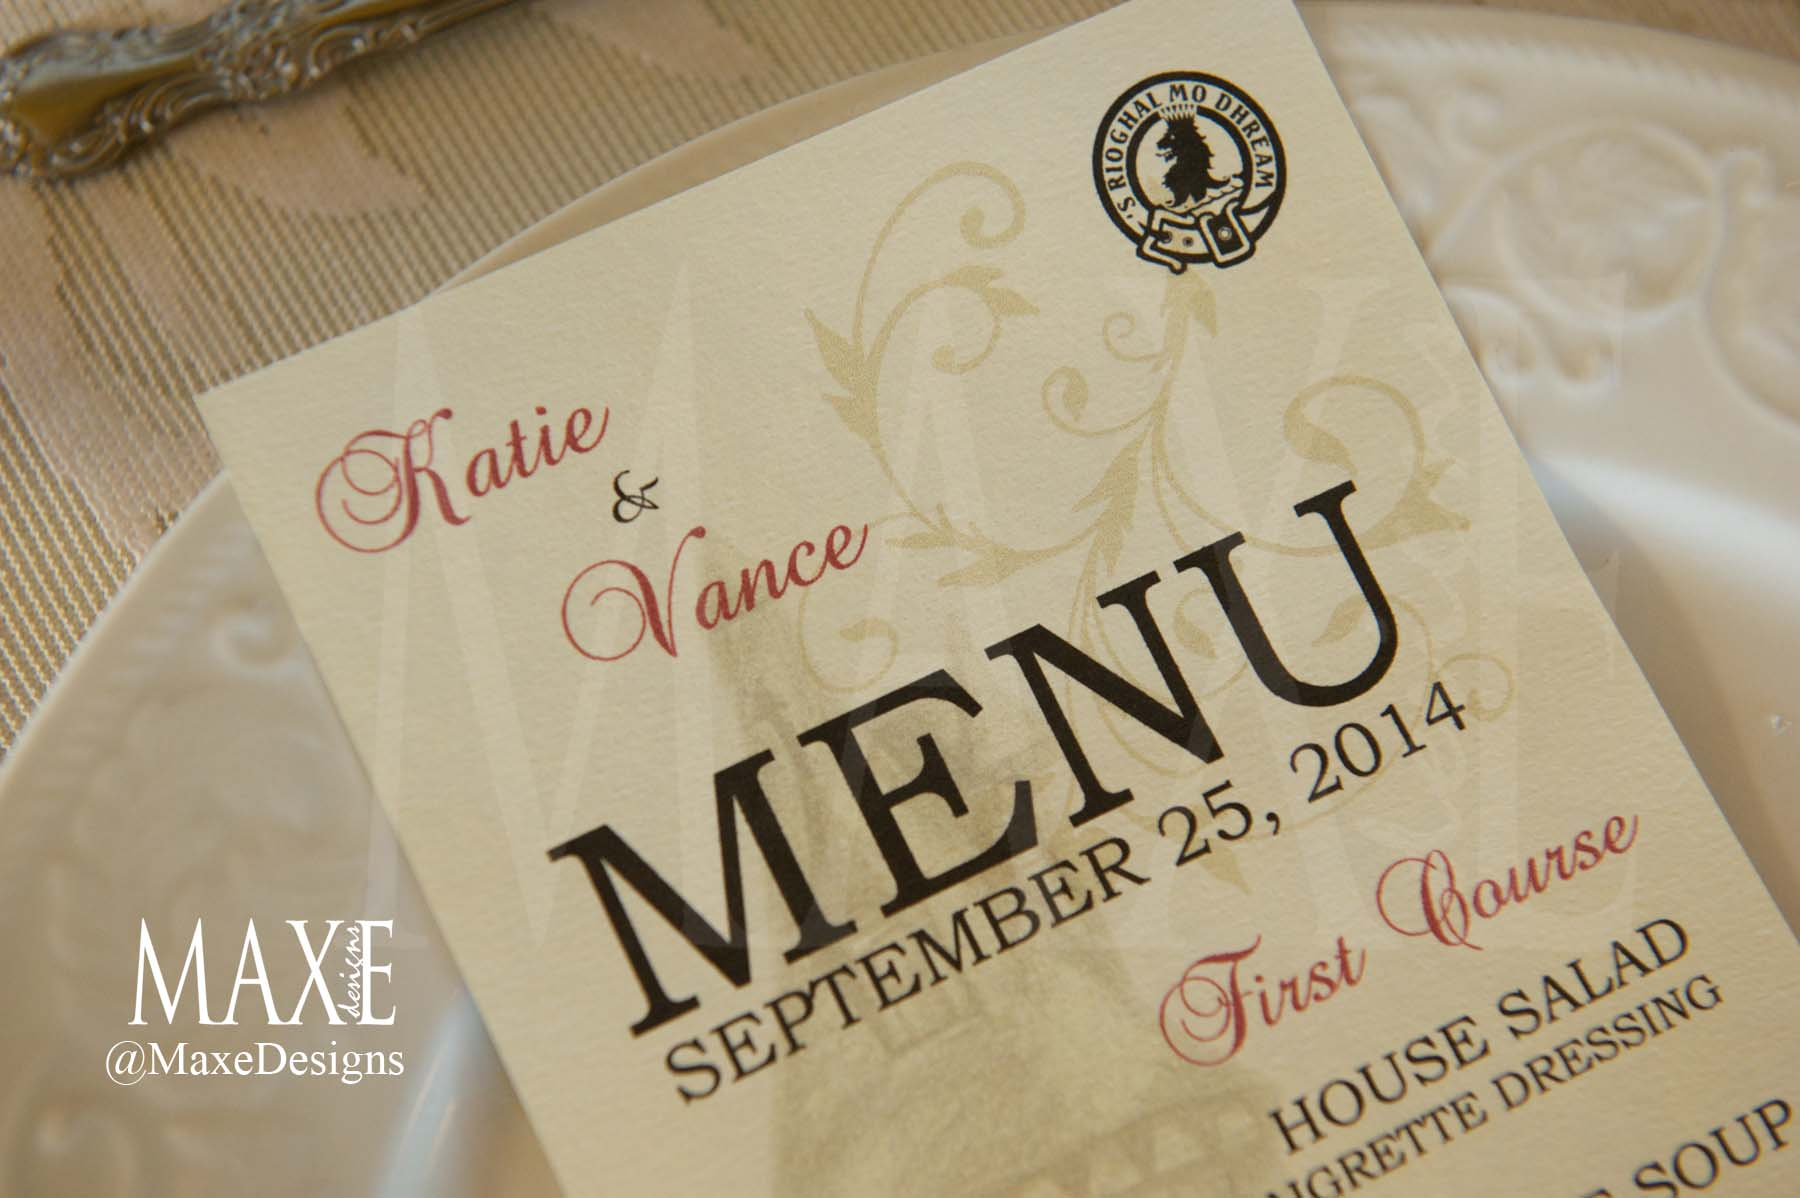 Katie & Vance's menu continued to complement their castle sketch and family crest with red and gold accents on a beautiful deckled edge paper. Gorgeous!